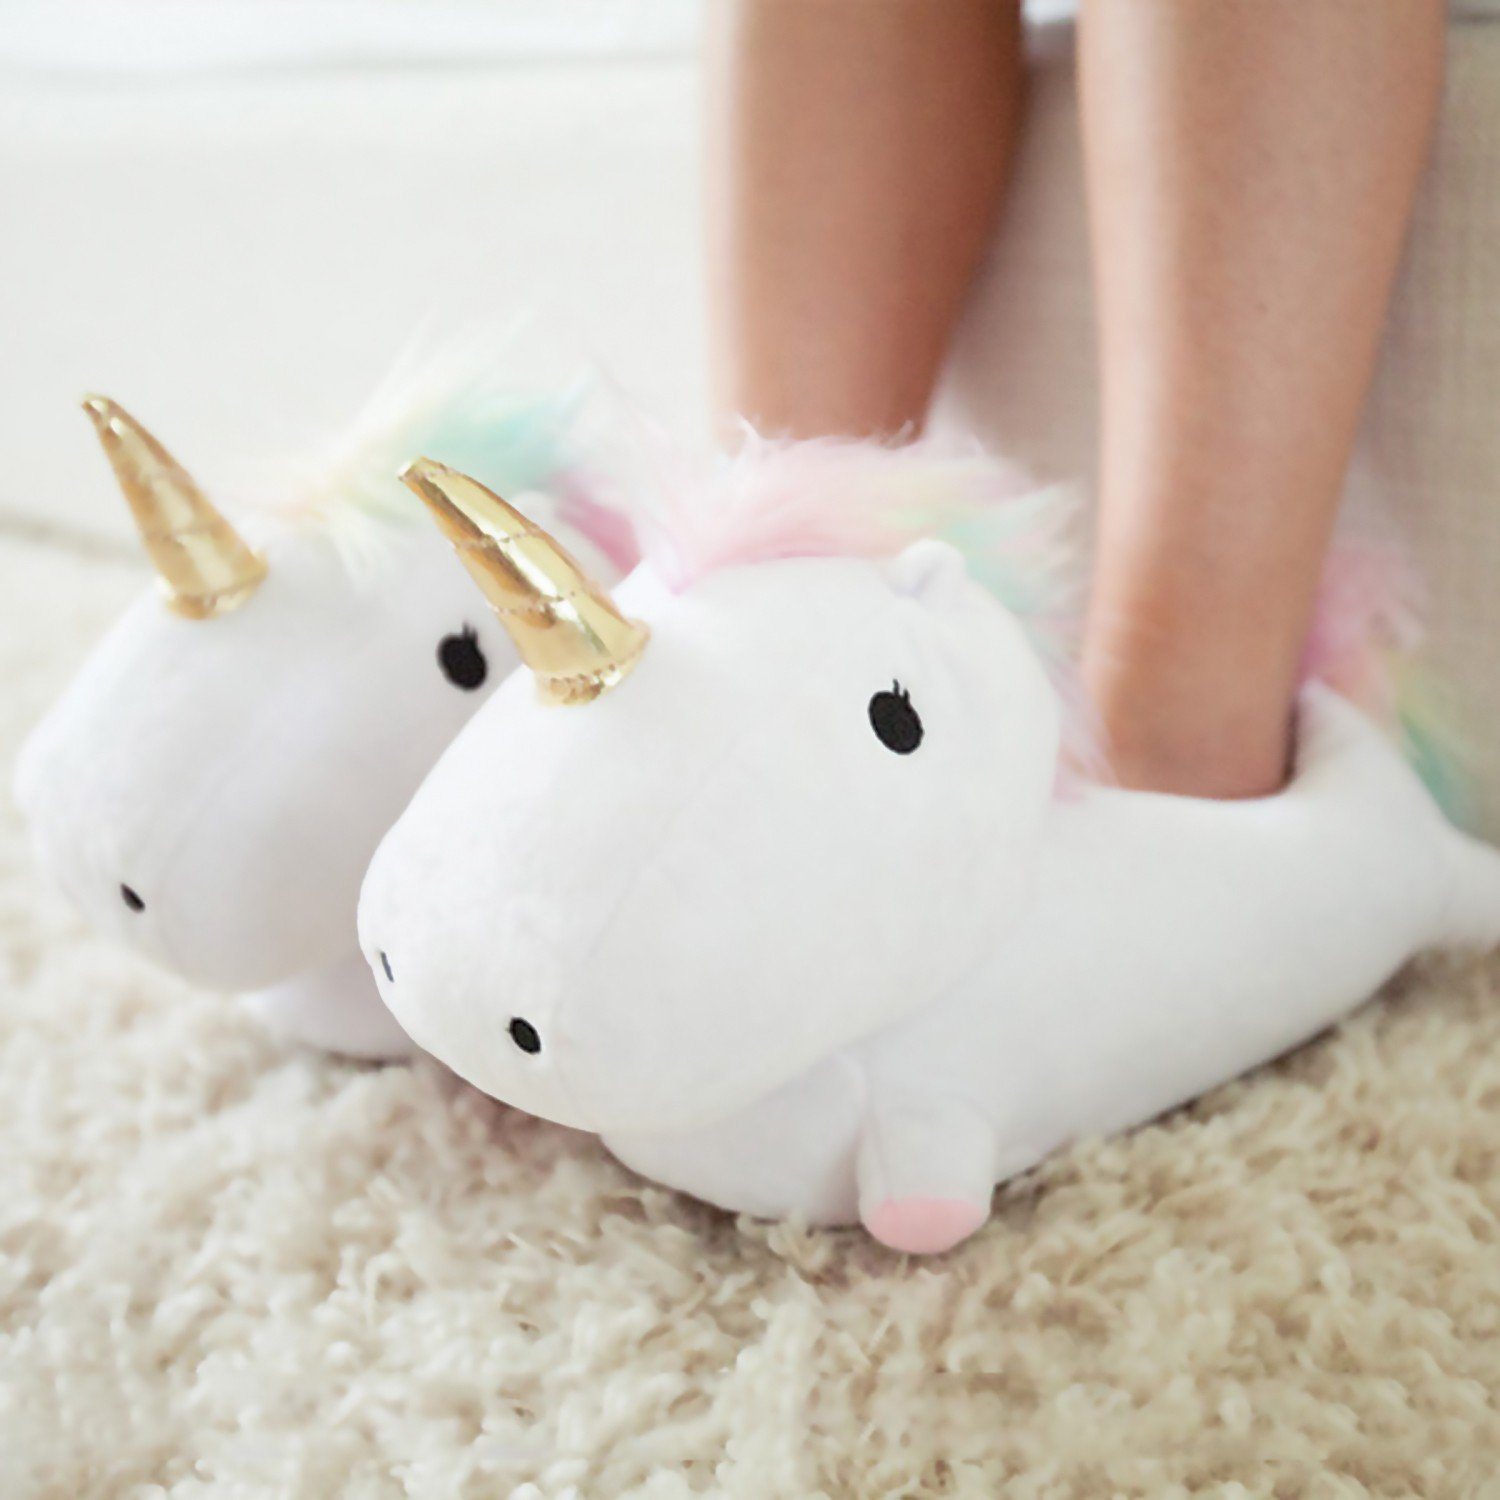 White Light-Up Unicorn Slippers for Women Twinkle Tootsies Color Changing LED Lights and Vibrant Rainbow Mane For Grownup Ladies with Magic in Their Hearts and Sparkle on Their Soles